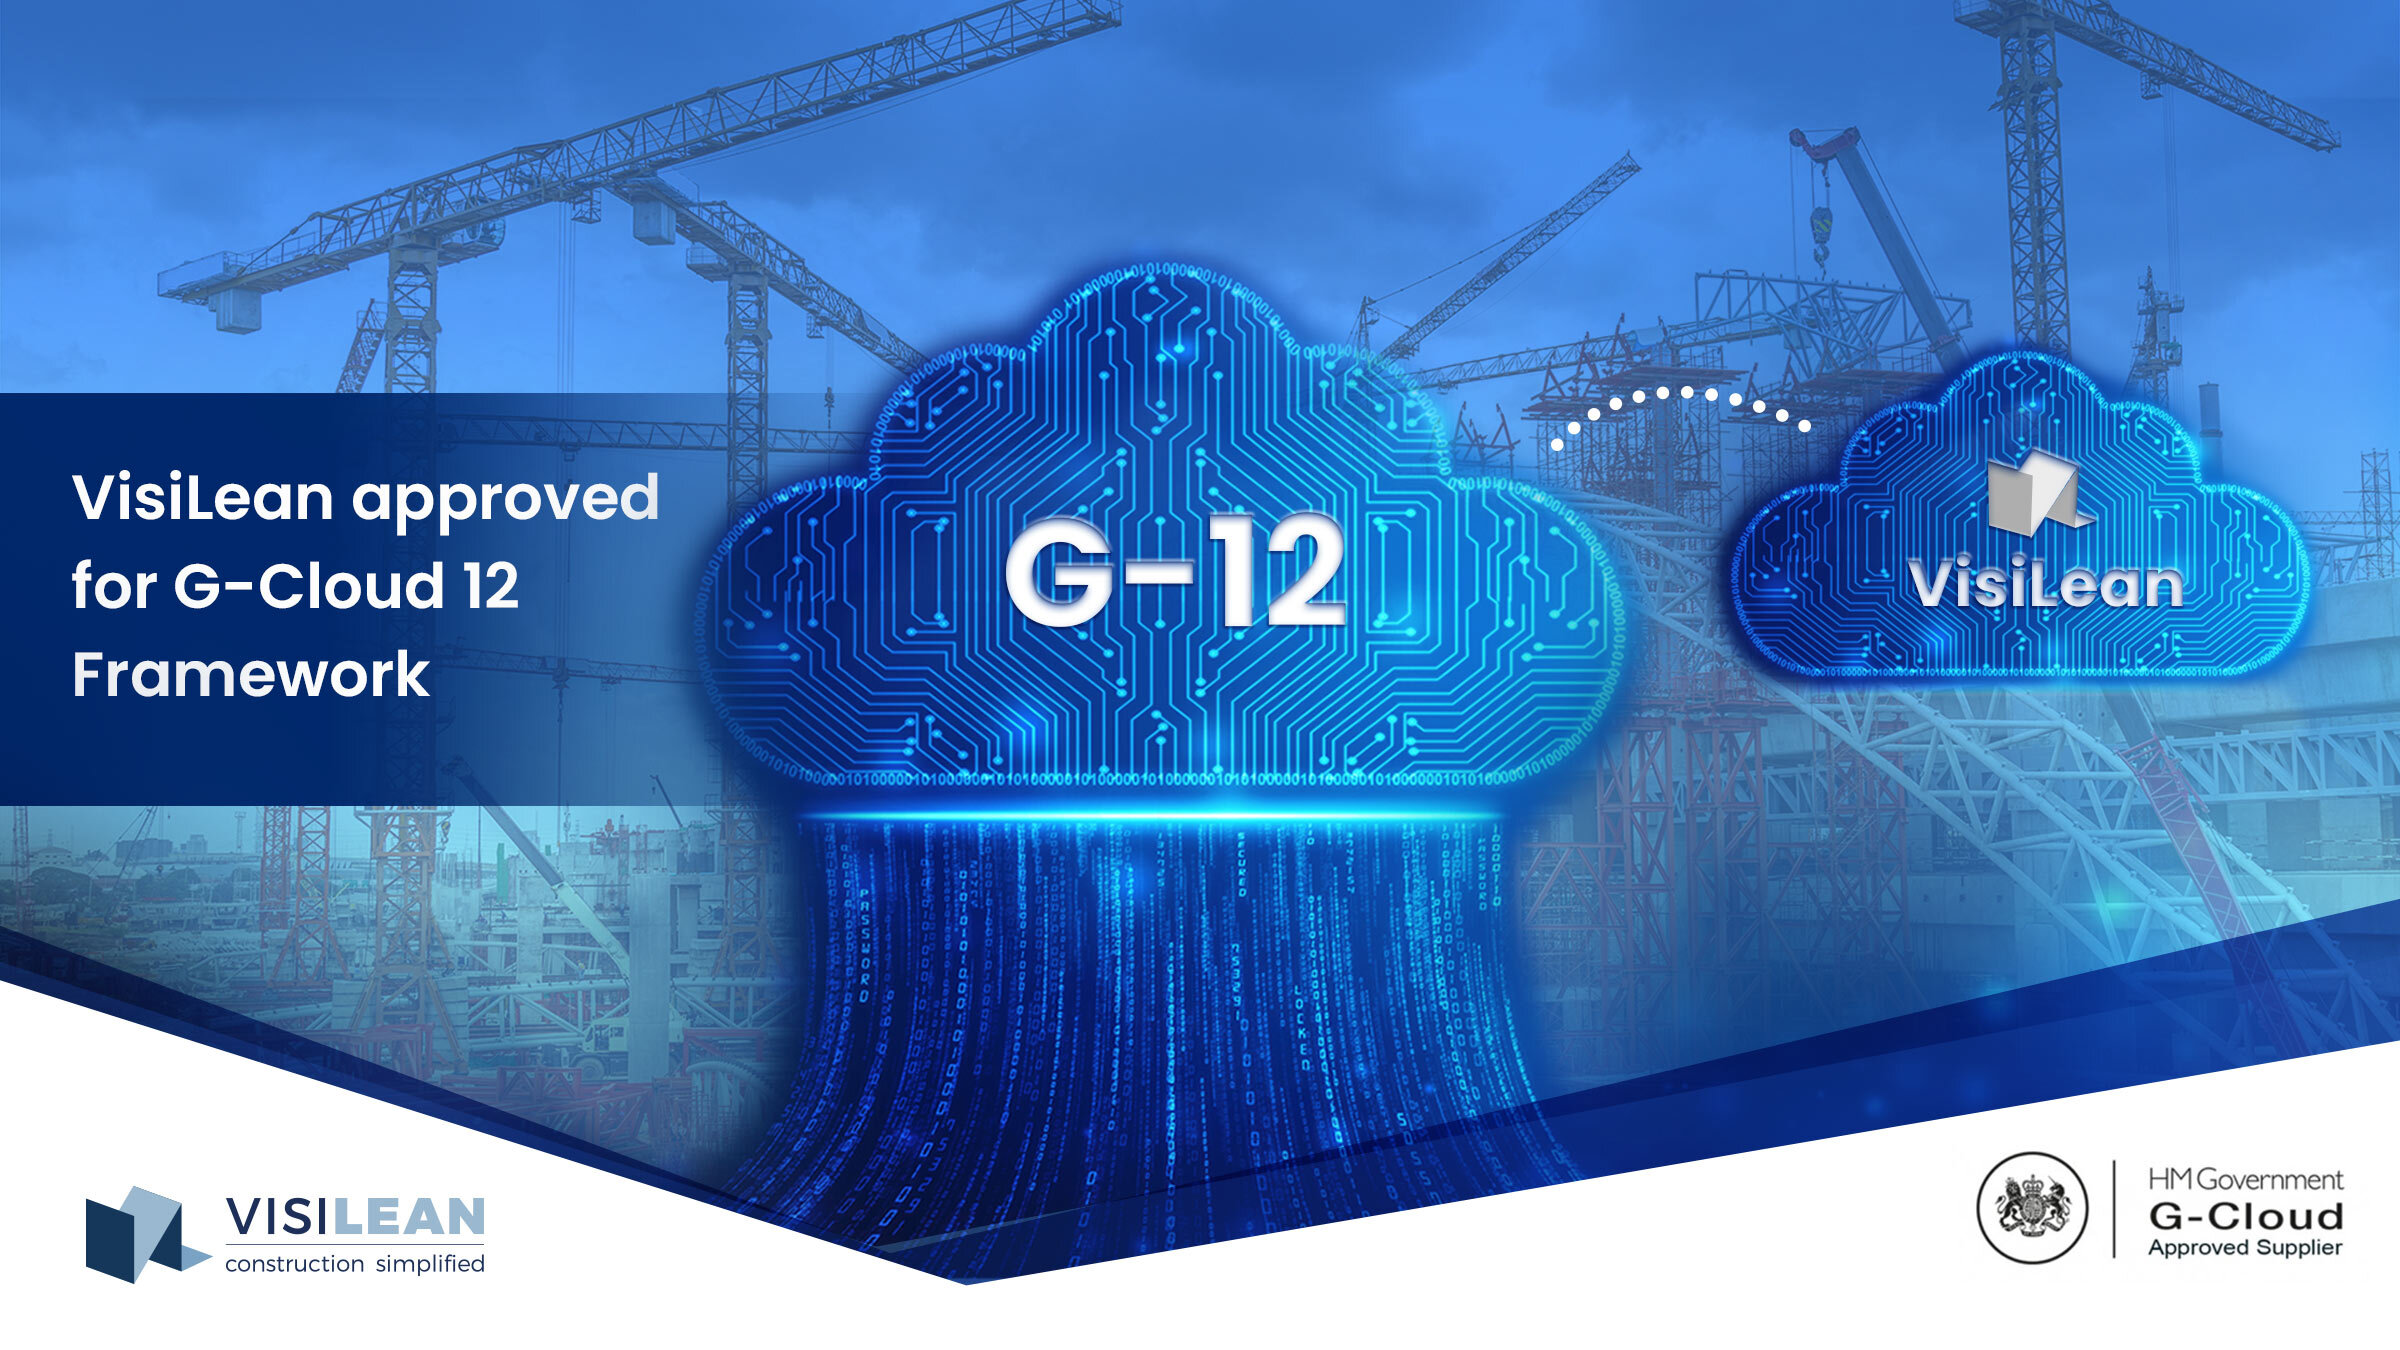 Visilean approved for G-Cloud 12 Framework 2